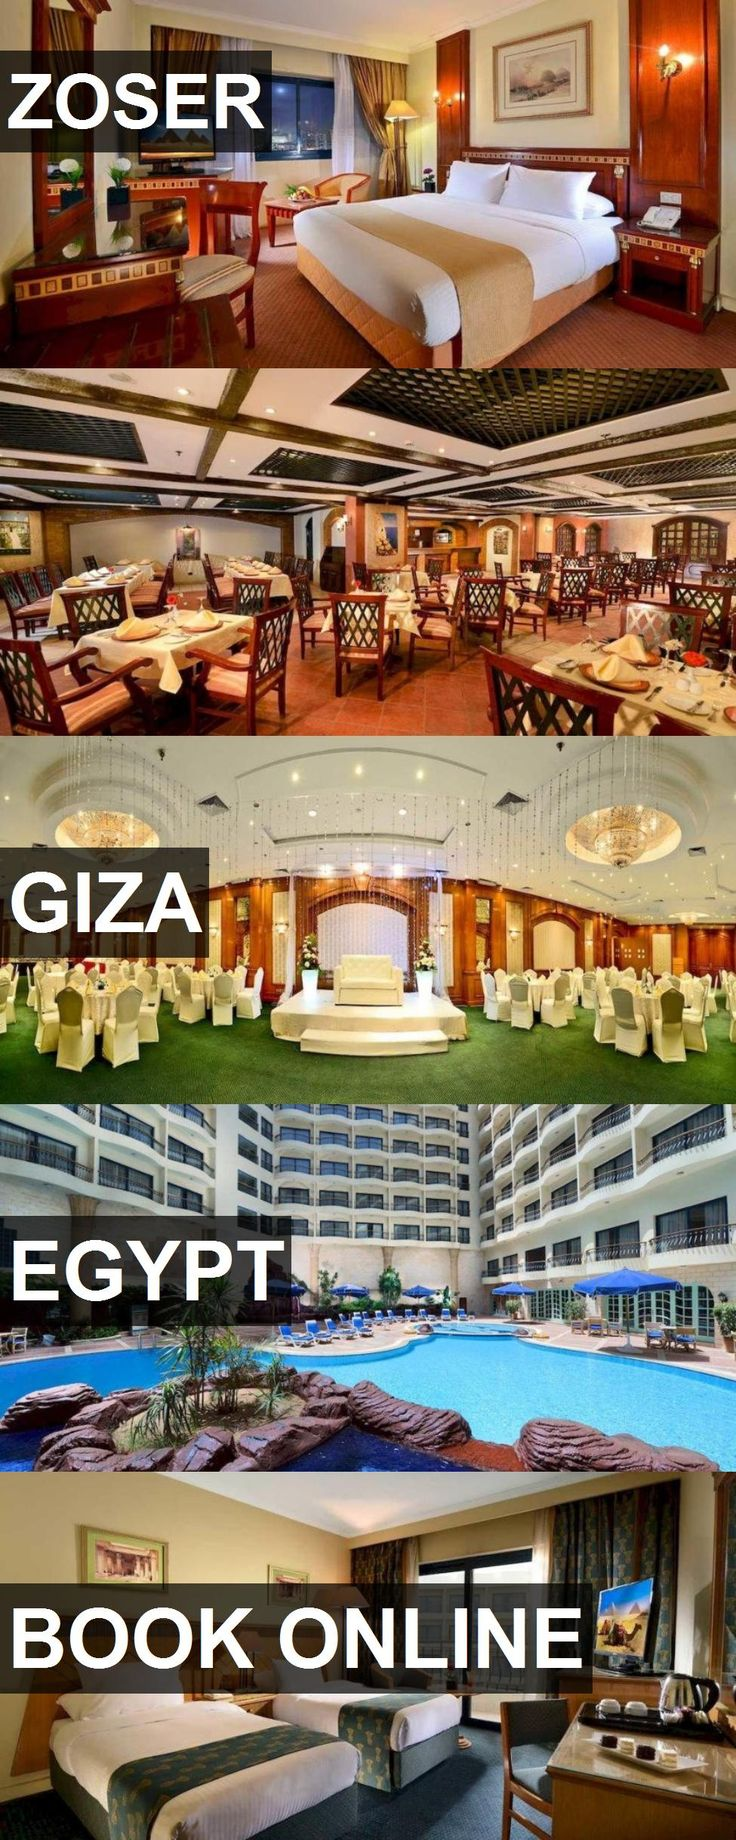 Hotel ZOSER in Giza, Egypt. For more information, photos, reviews and best prices please follow the link. #Egypt #Giza #ZOSER #hotel #travel #vacation